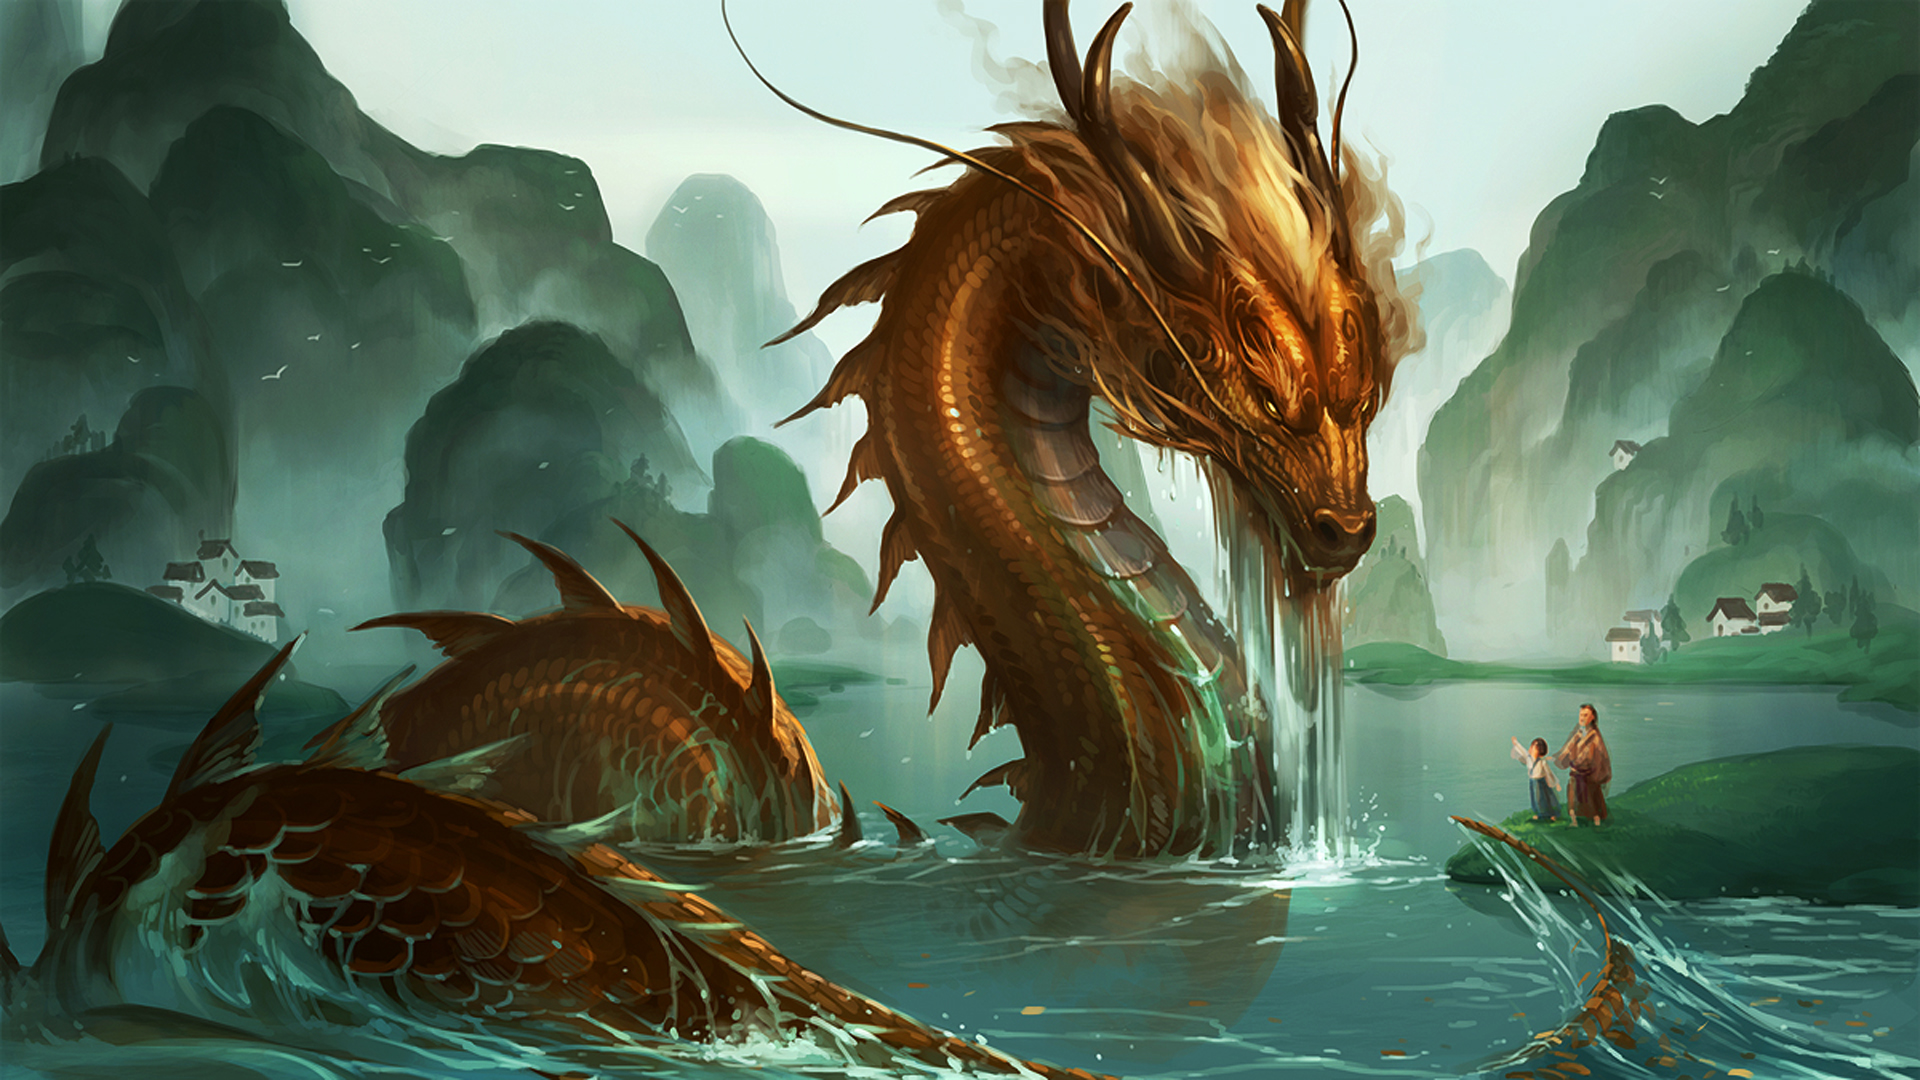 20 2015 By Stephen Comments Off on Chinese Dragon Wallpapers 3D 1920x1080